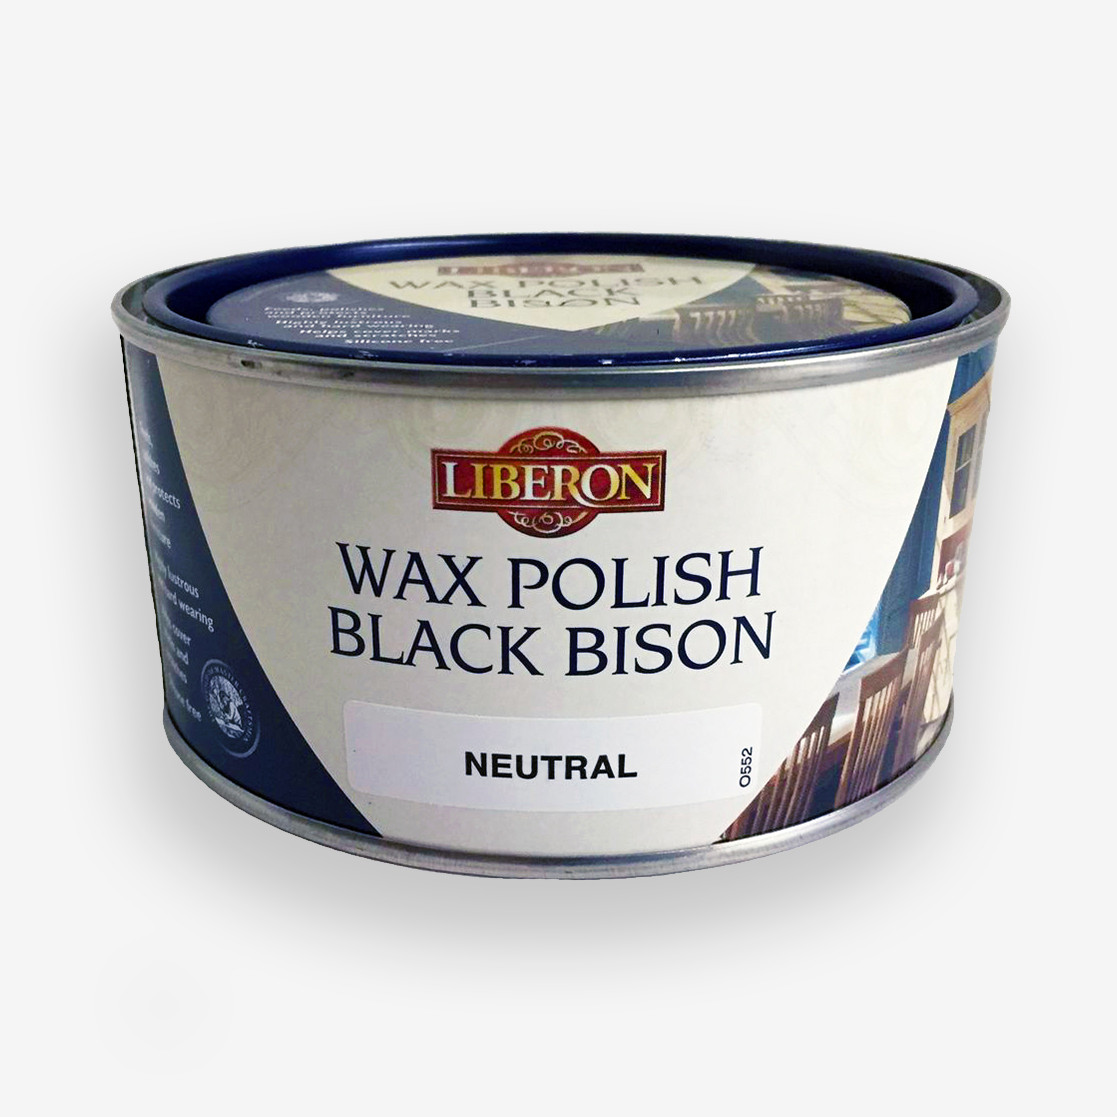 Wax Polish Liberon